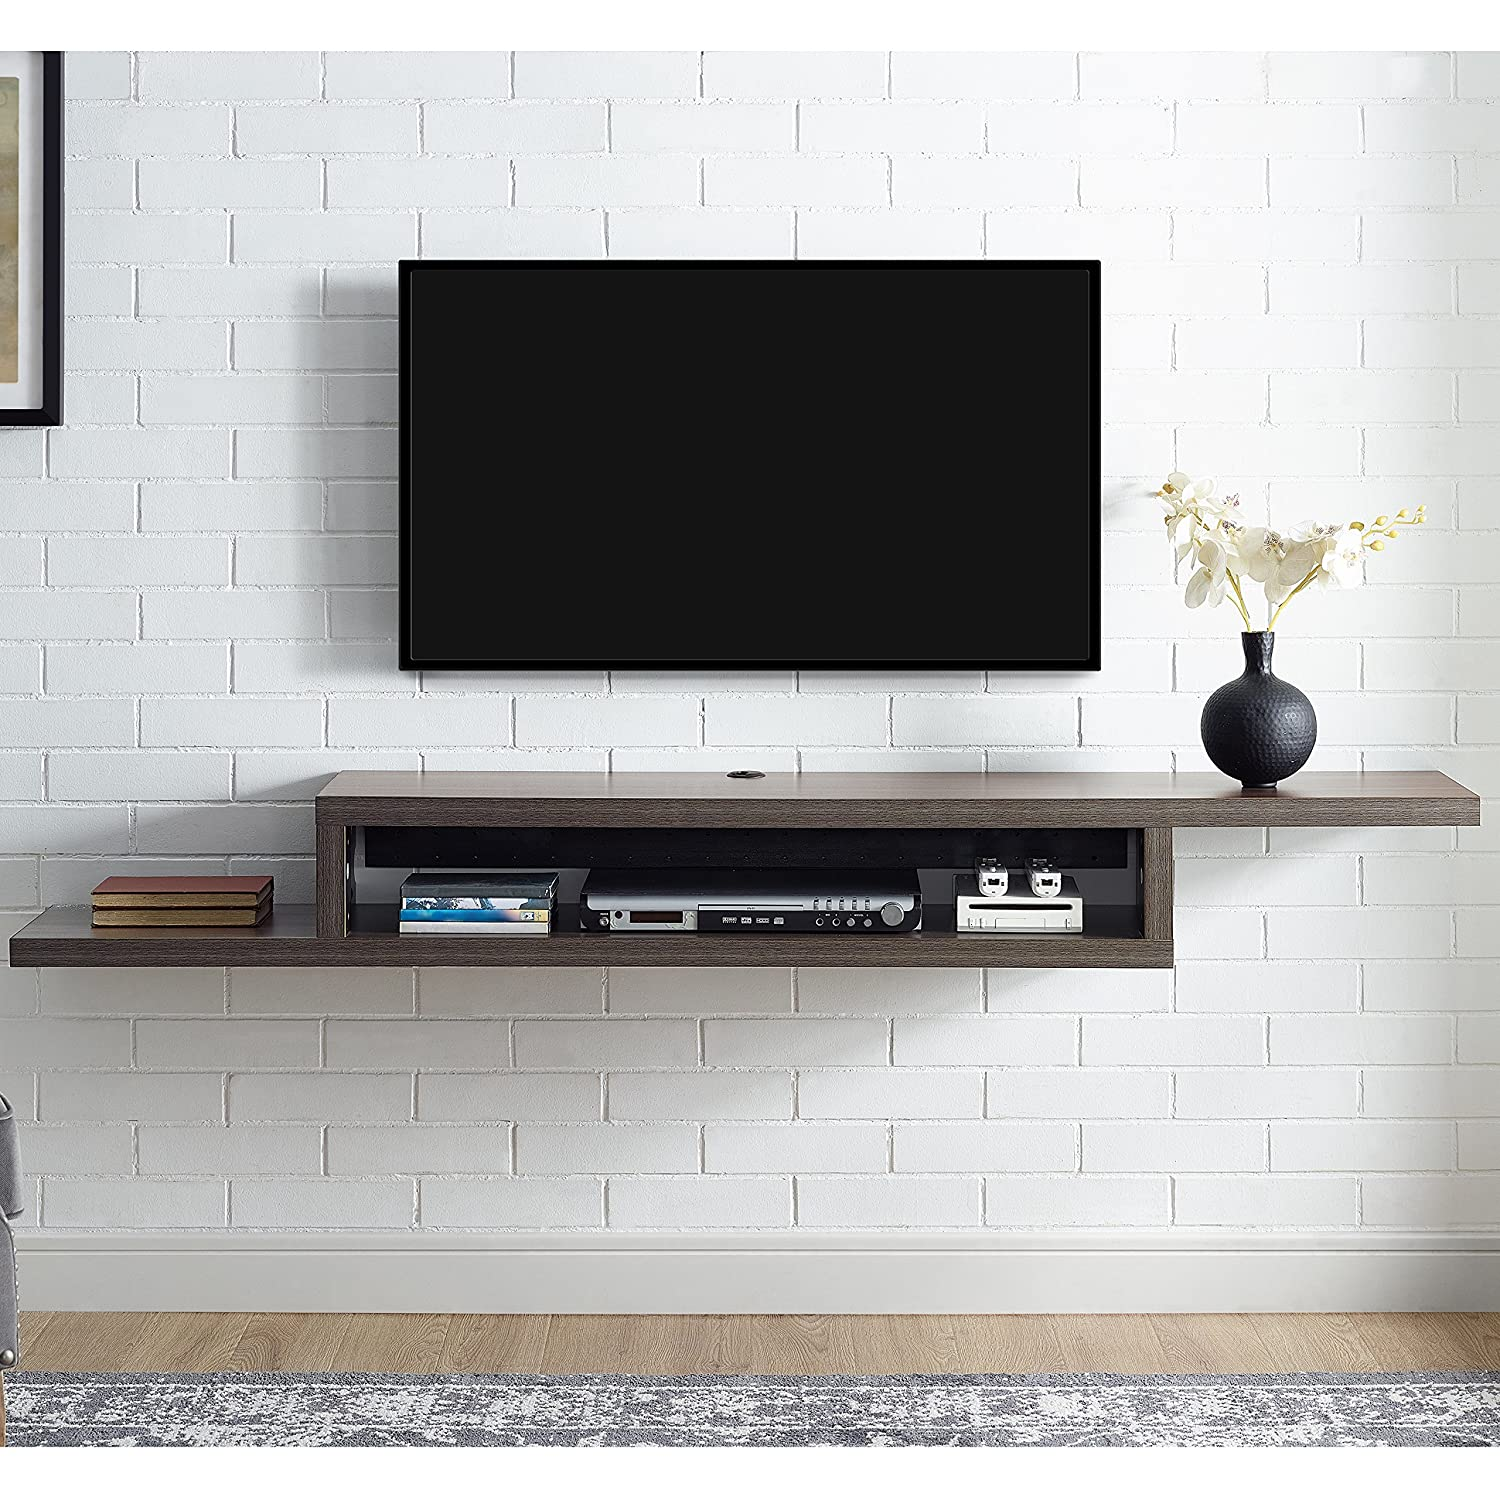 amazoncom martin furniture imass asymmetrical floating wall mounted tvconsole  skyline walnut kitchen  dining. amazoncom martin furniture imass asymmetrical floating wall